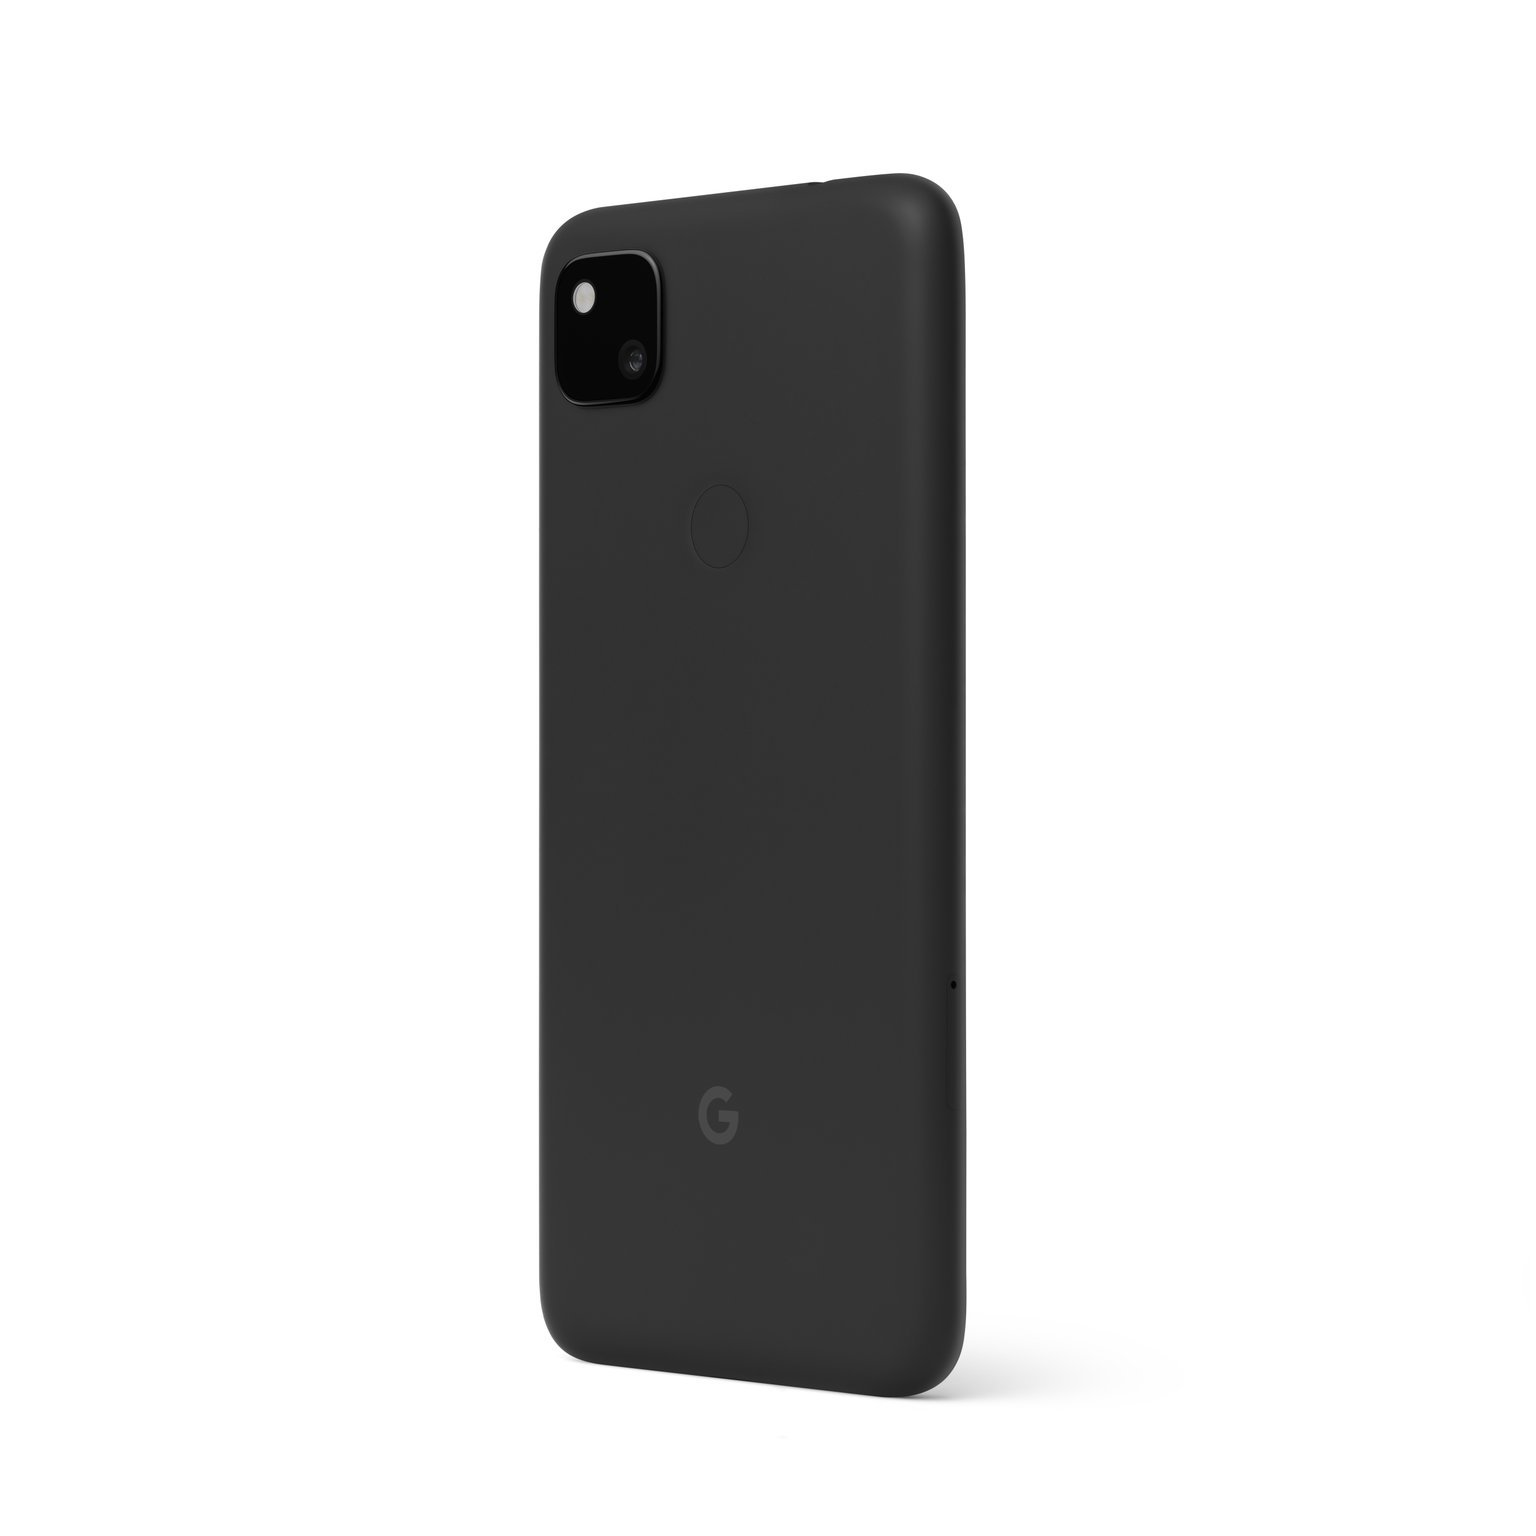 Google Pixel 4a Is Here, Brings Extra Bang For Your Buck